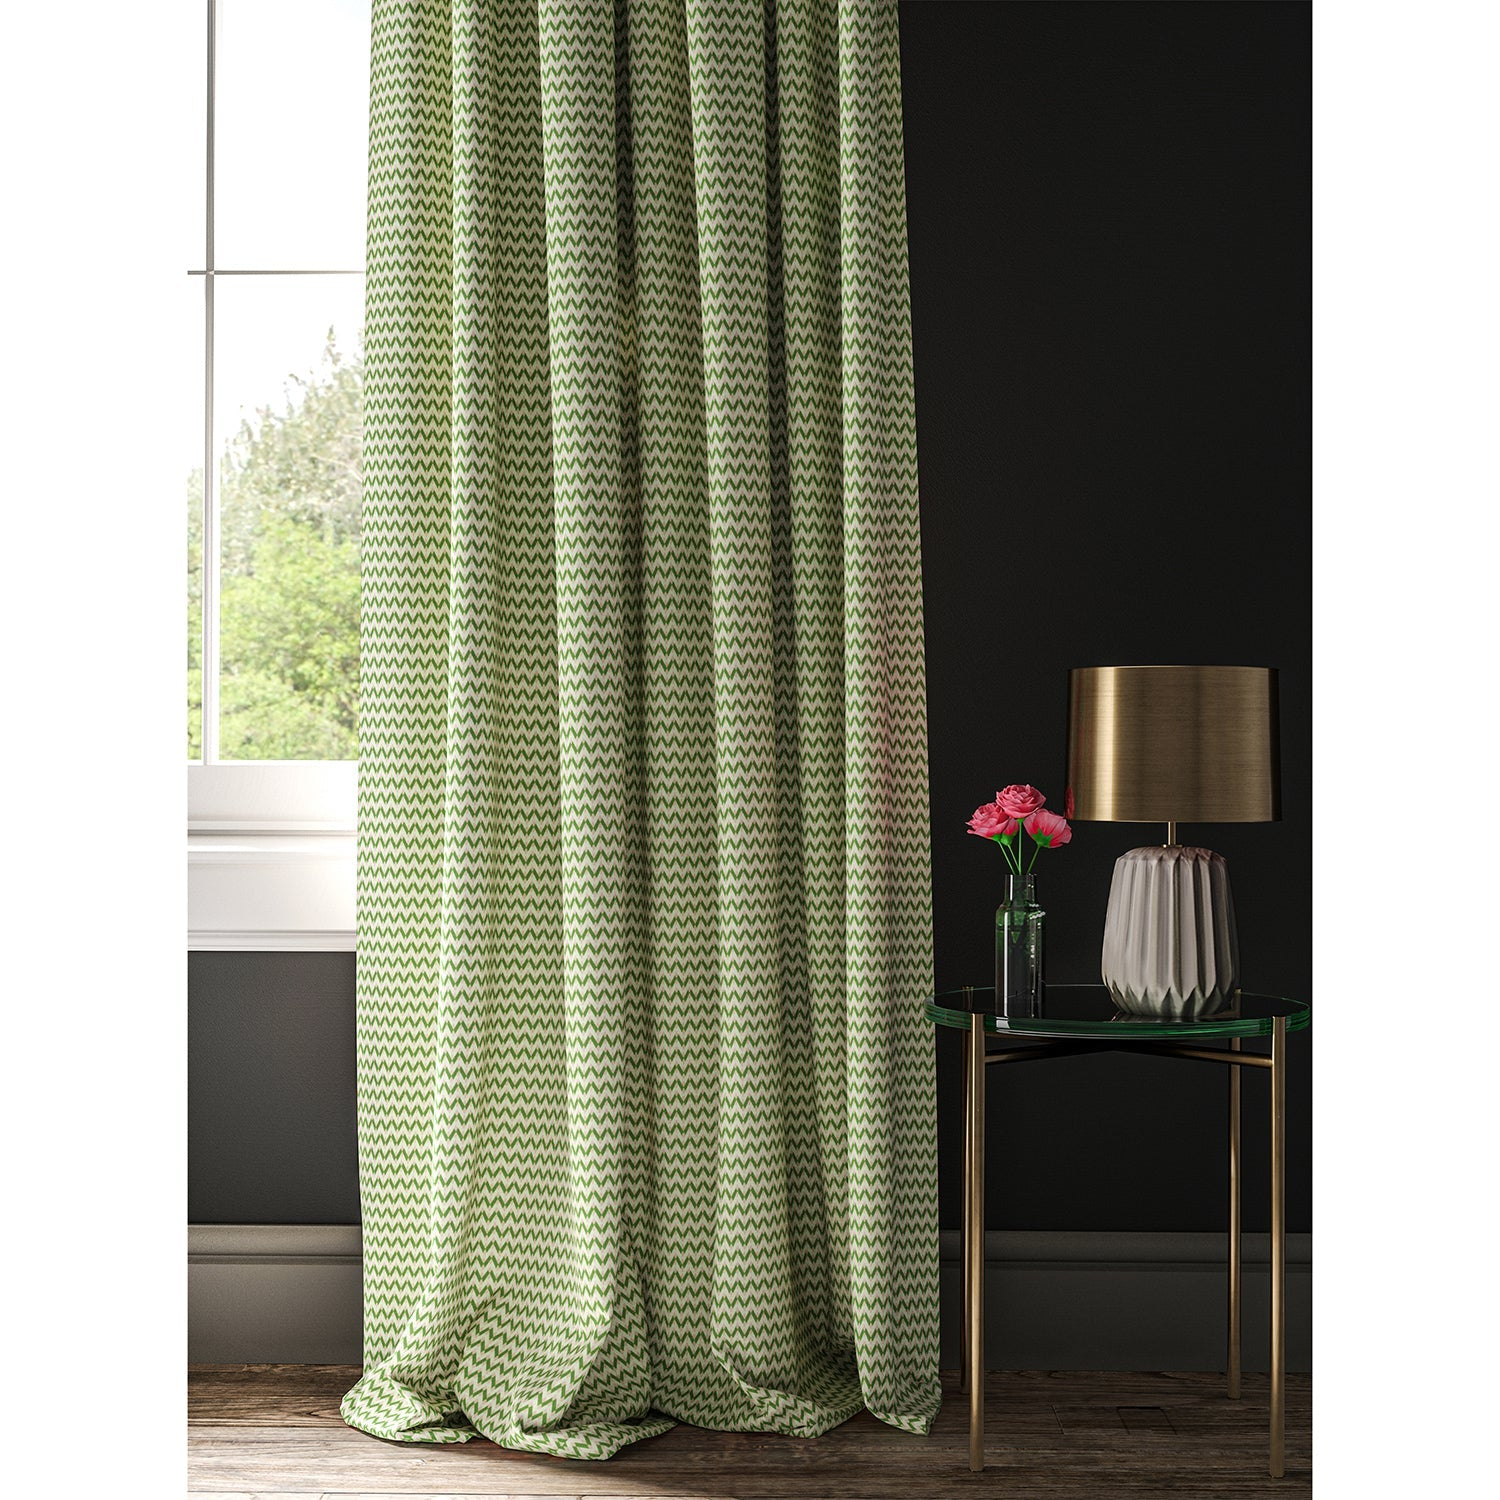 Curtain made with a light green, pink and cream geometric weave fabric